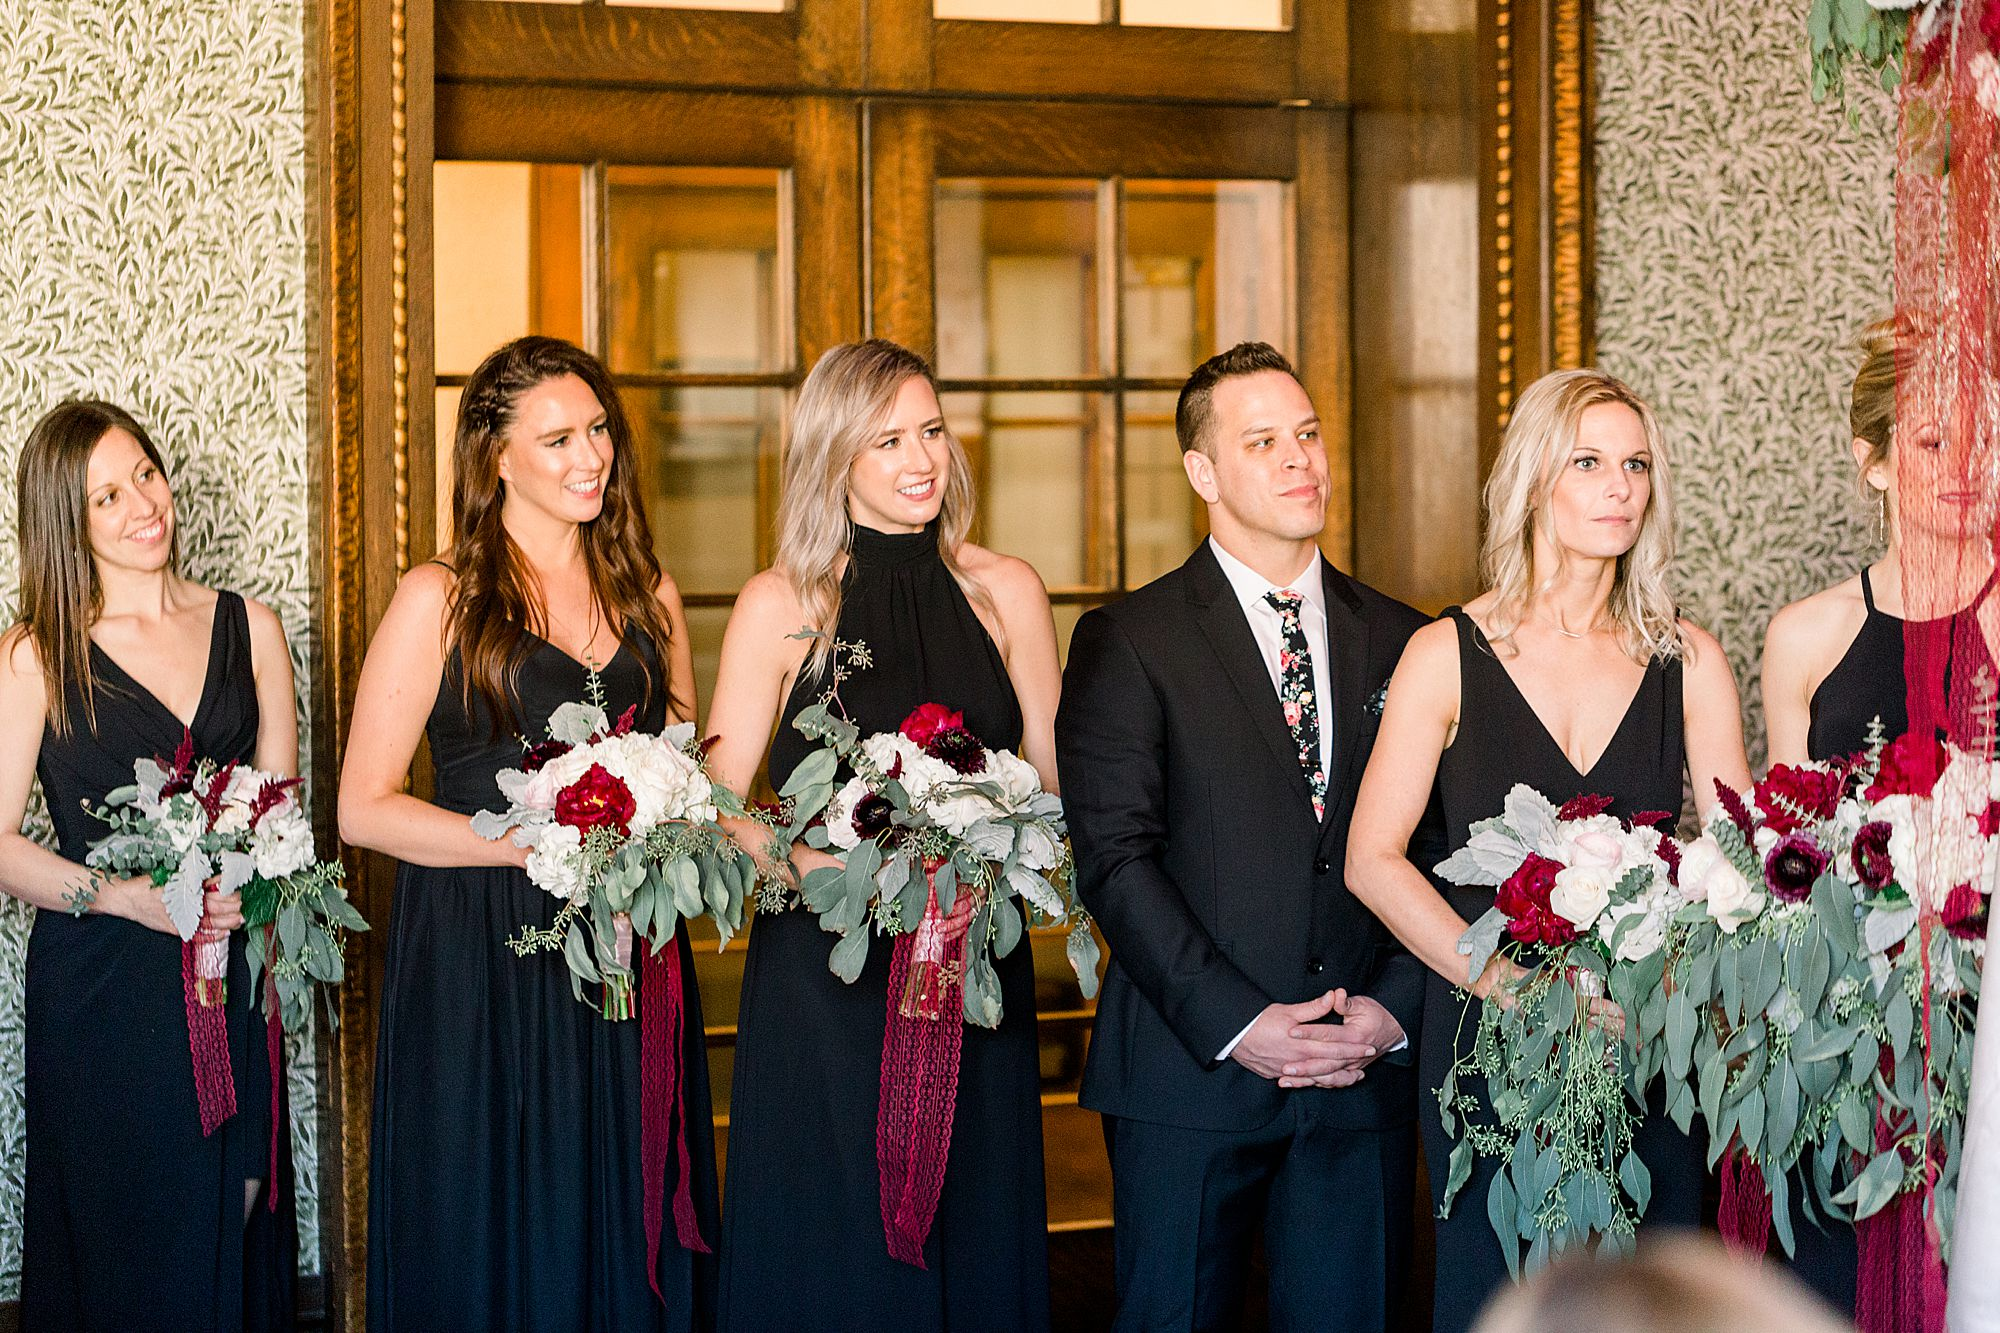 University Club Wedding in San Francisco - Cortney and Jon - San Francisco Wedding - Ashley Baumgartner - SF Wedding Photographer_0097.jpg